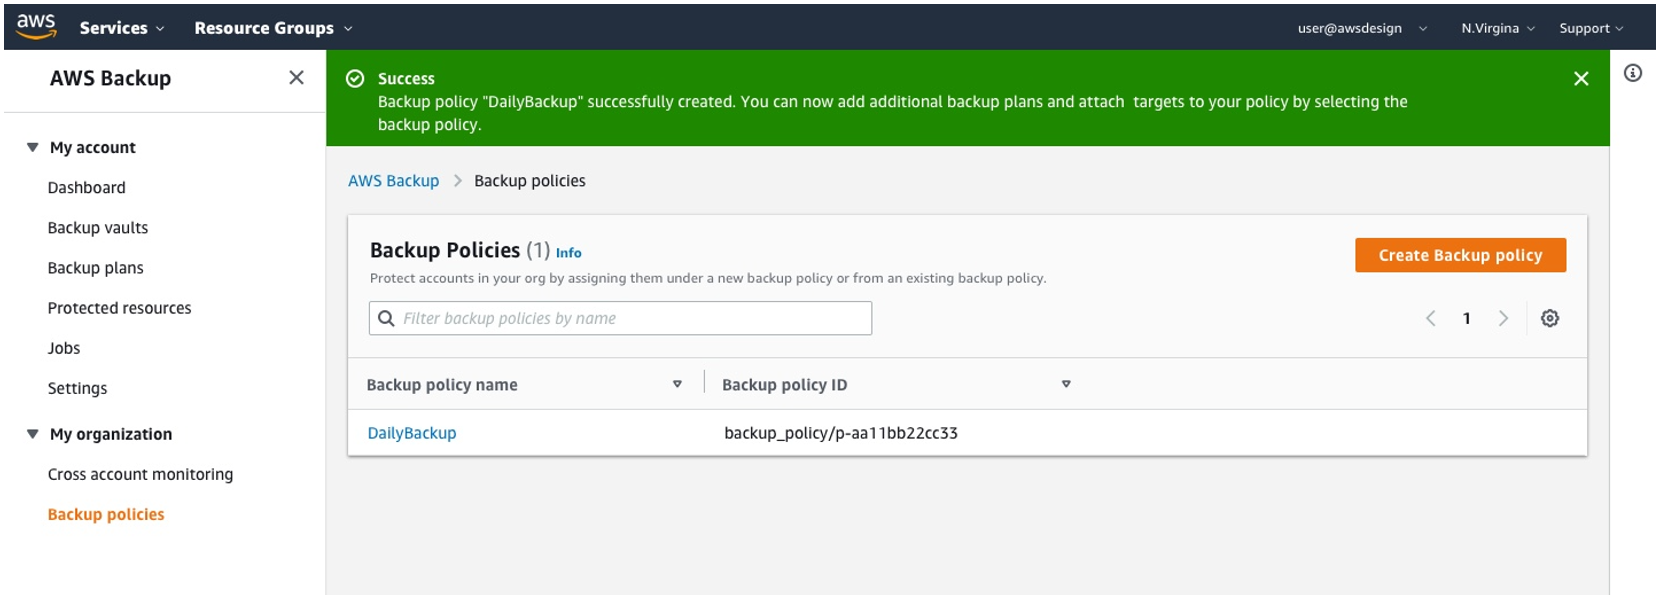 Now that your backup policy is created you are ready to attach it to accounts or even organizational units in your organization by clicking into your newly created backup policy.